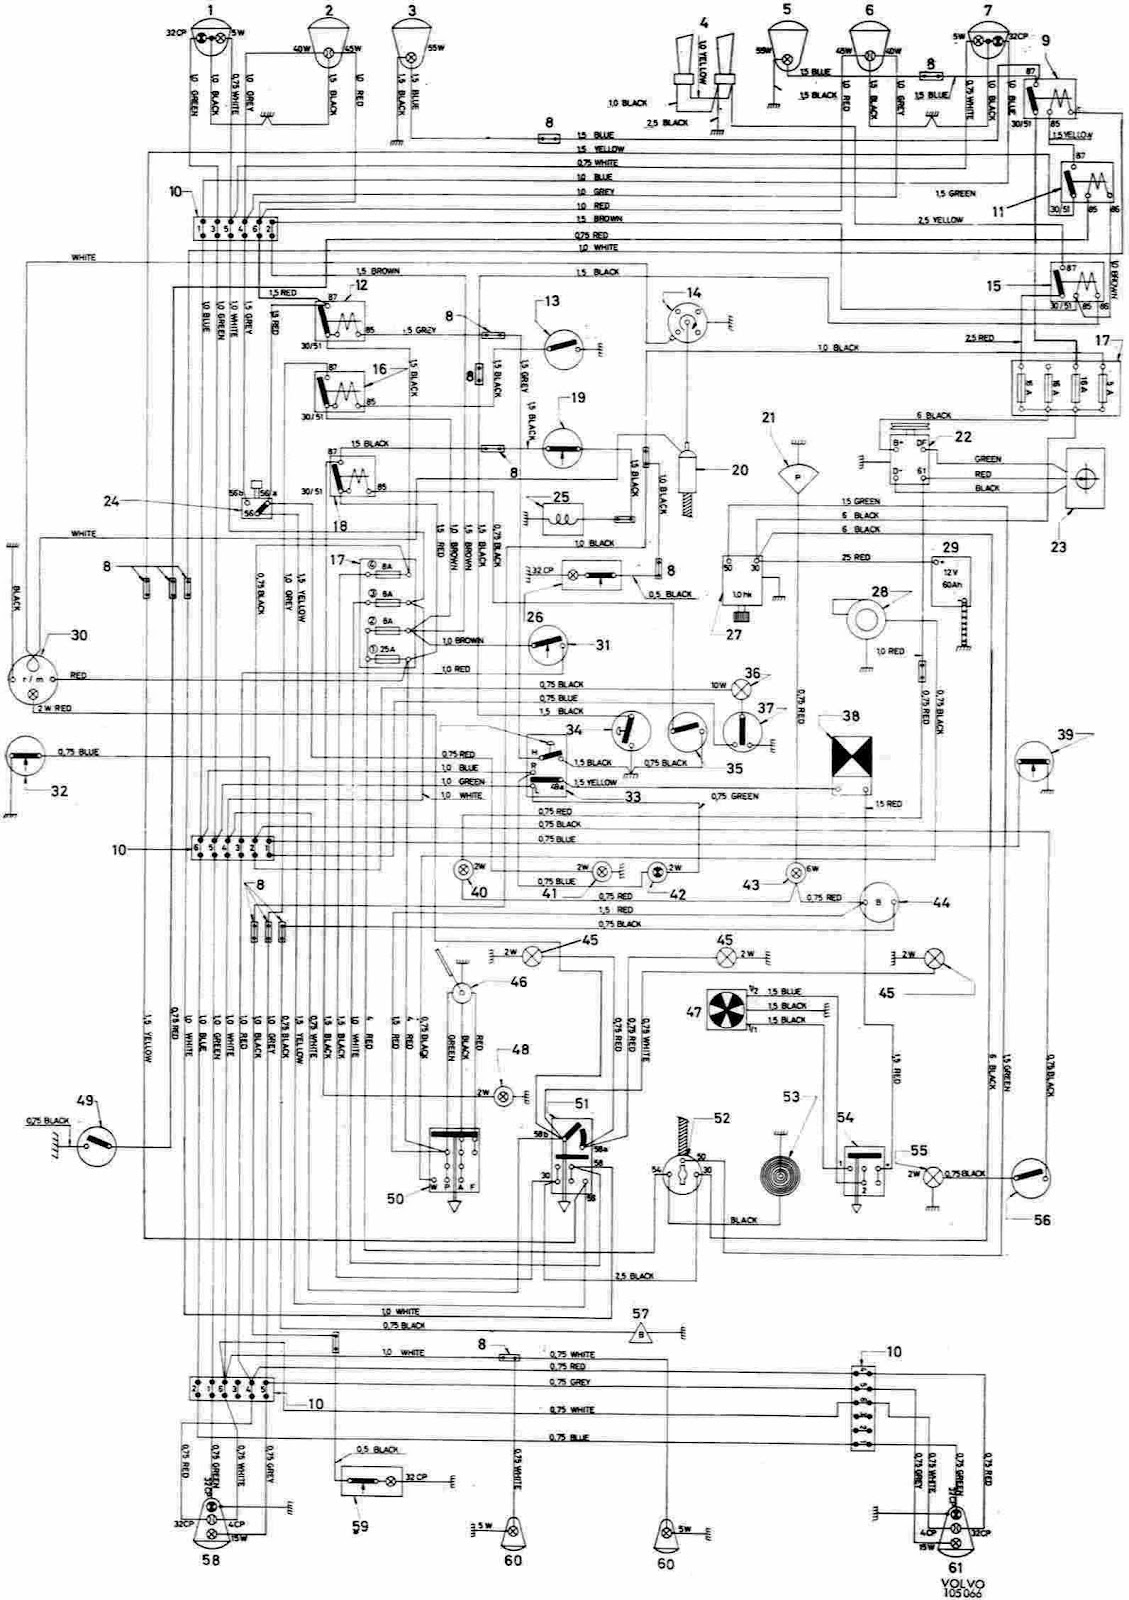 cj3 wiring diagram kwikee wiring diagram washer wire diagram wiring